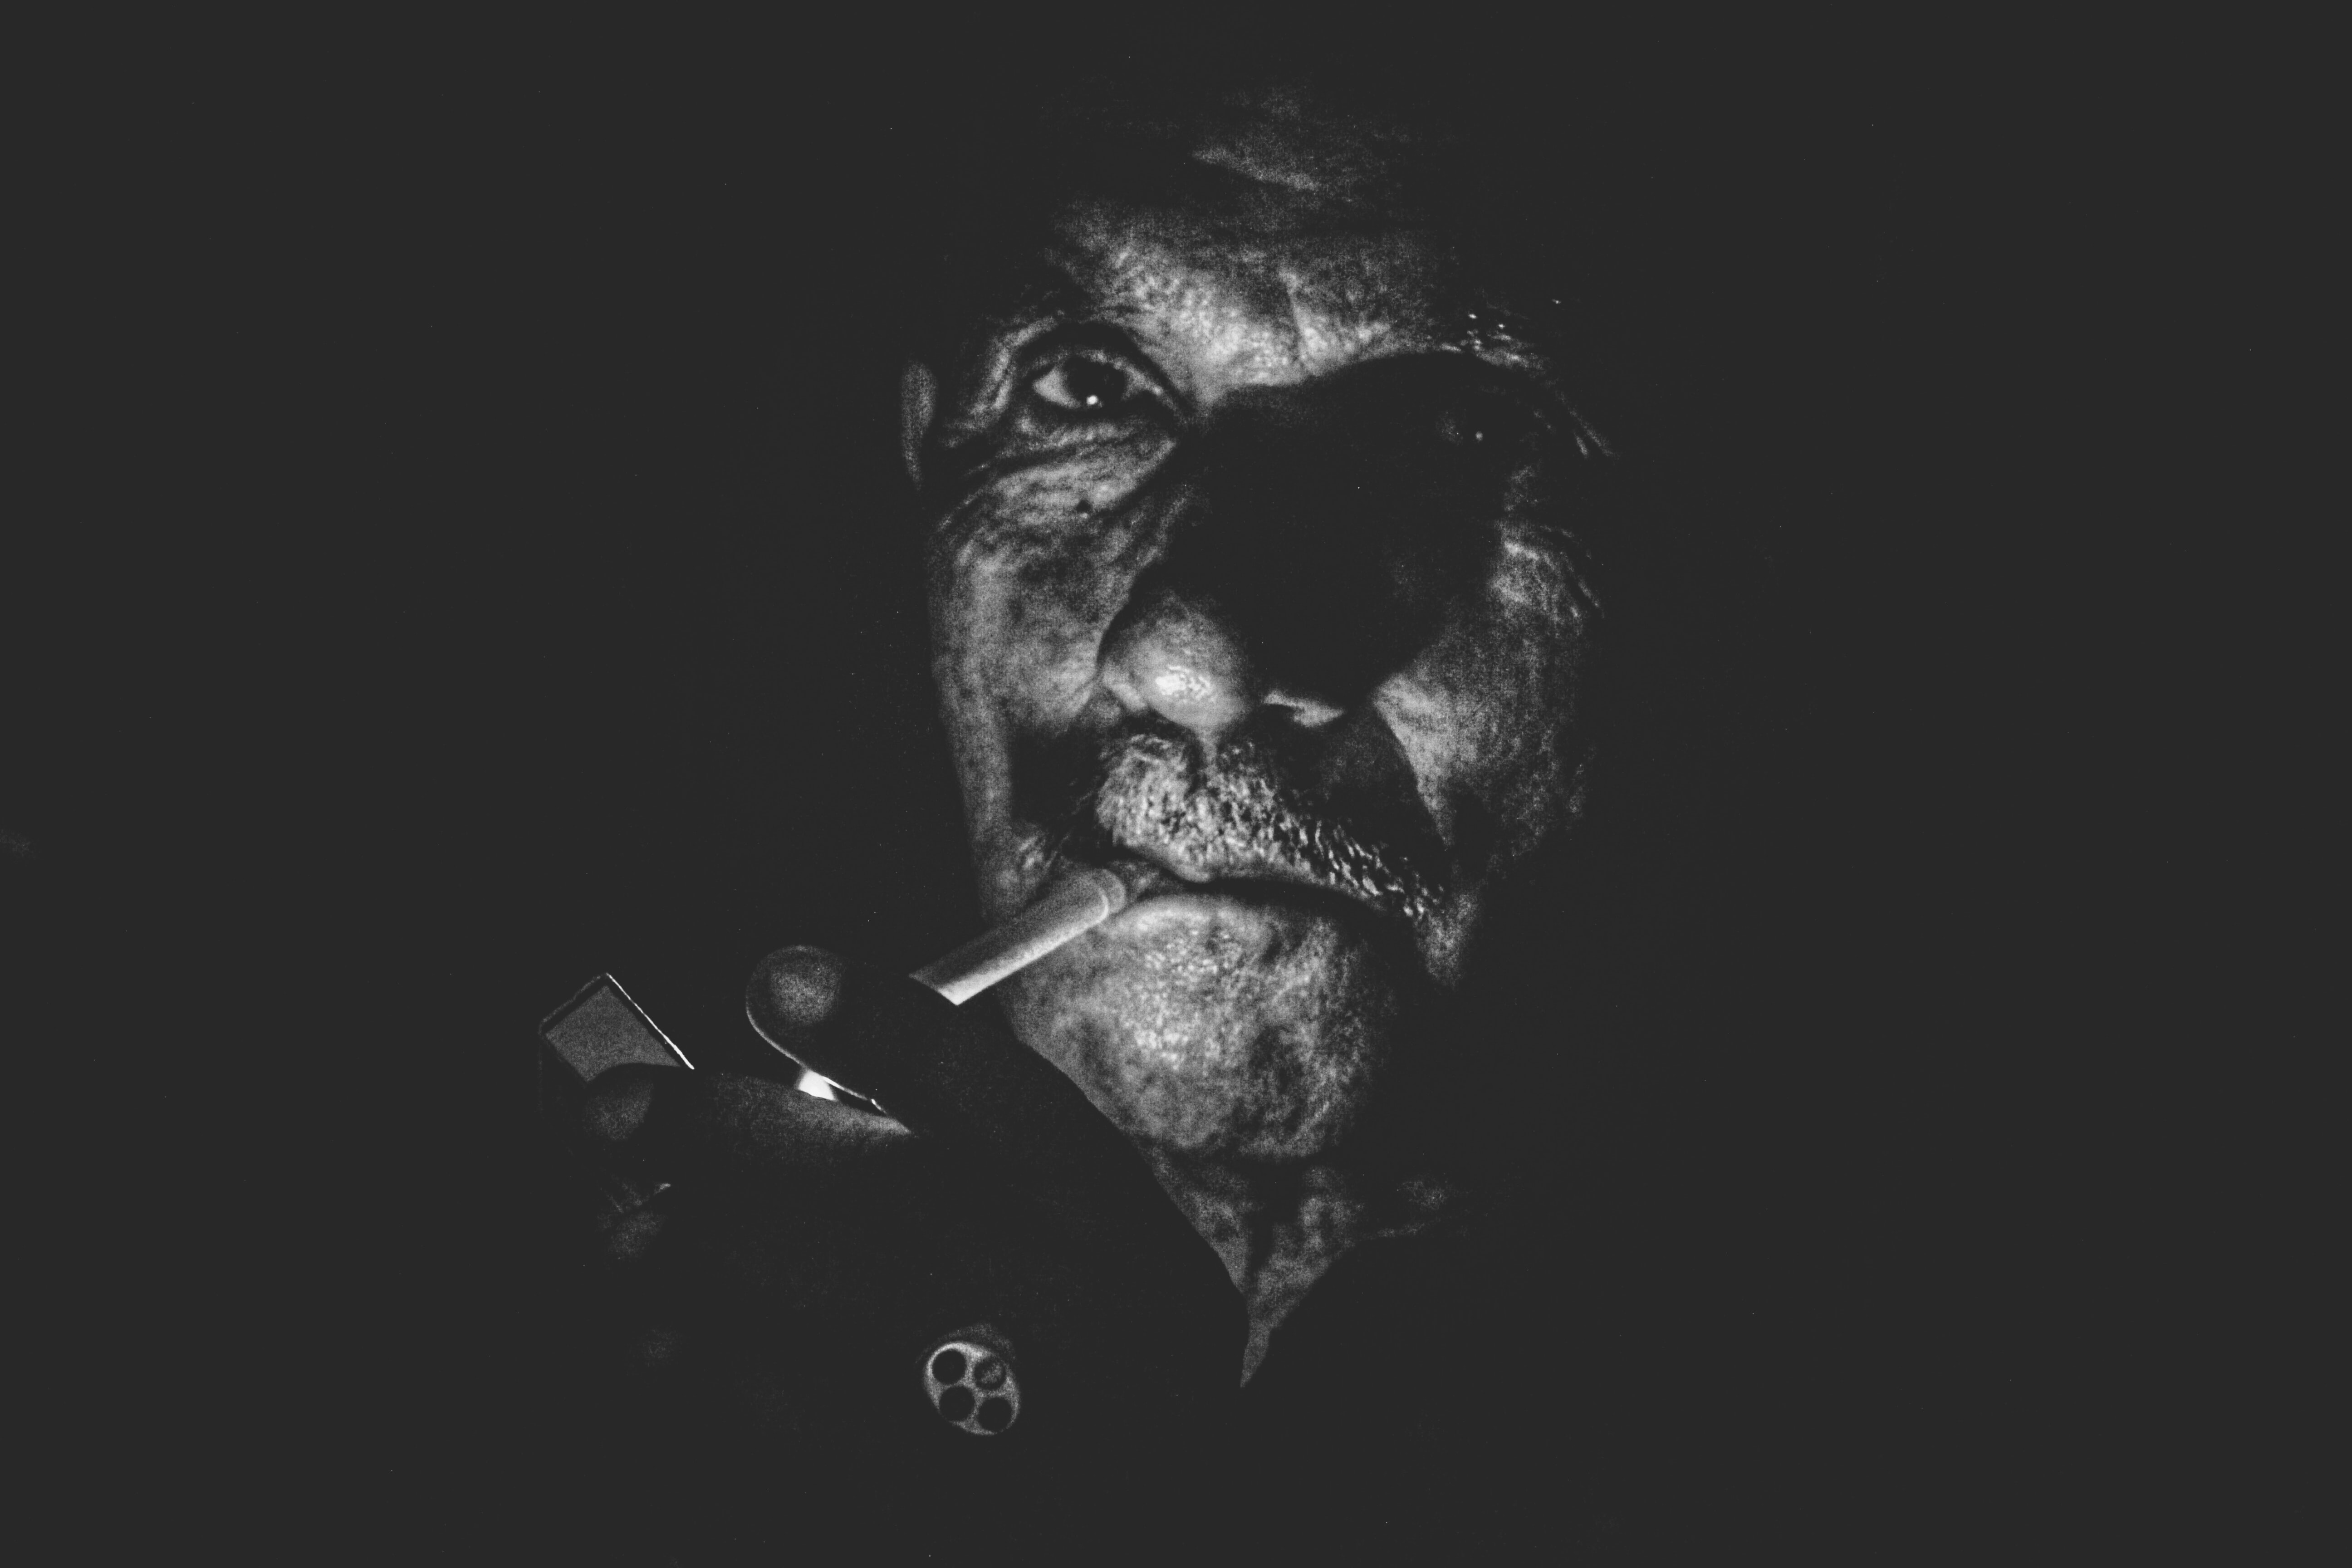 greyscale photo of man lighting cigarette close-up photo